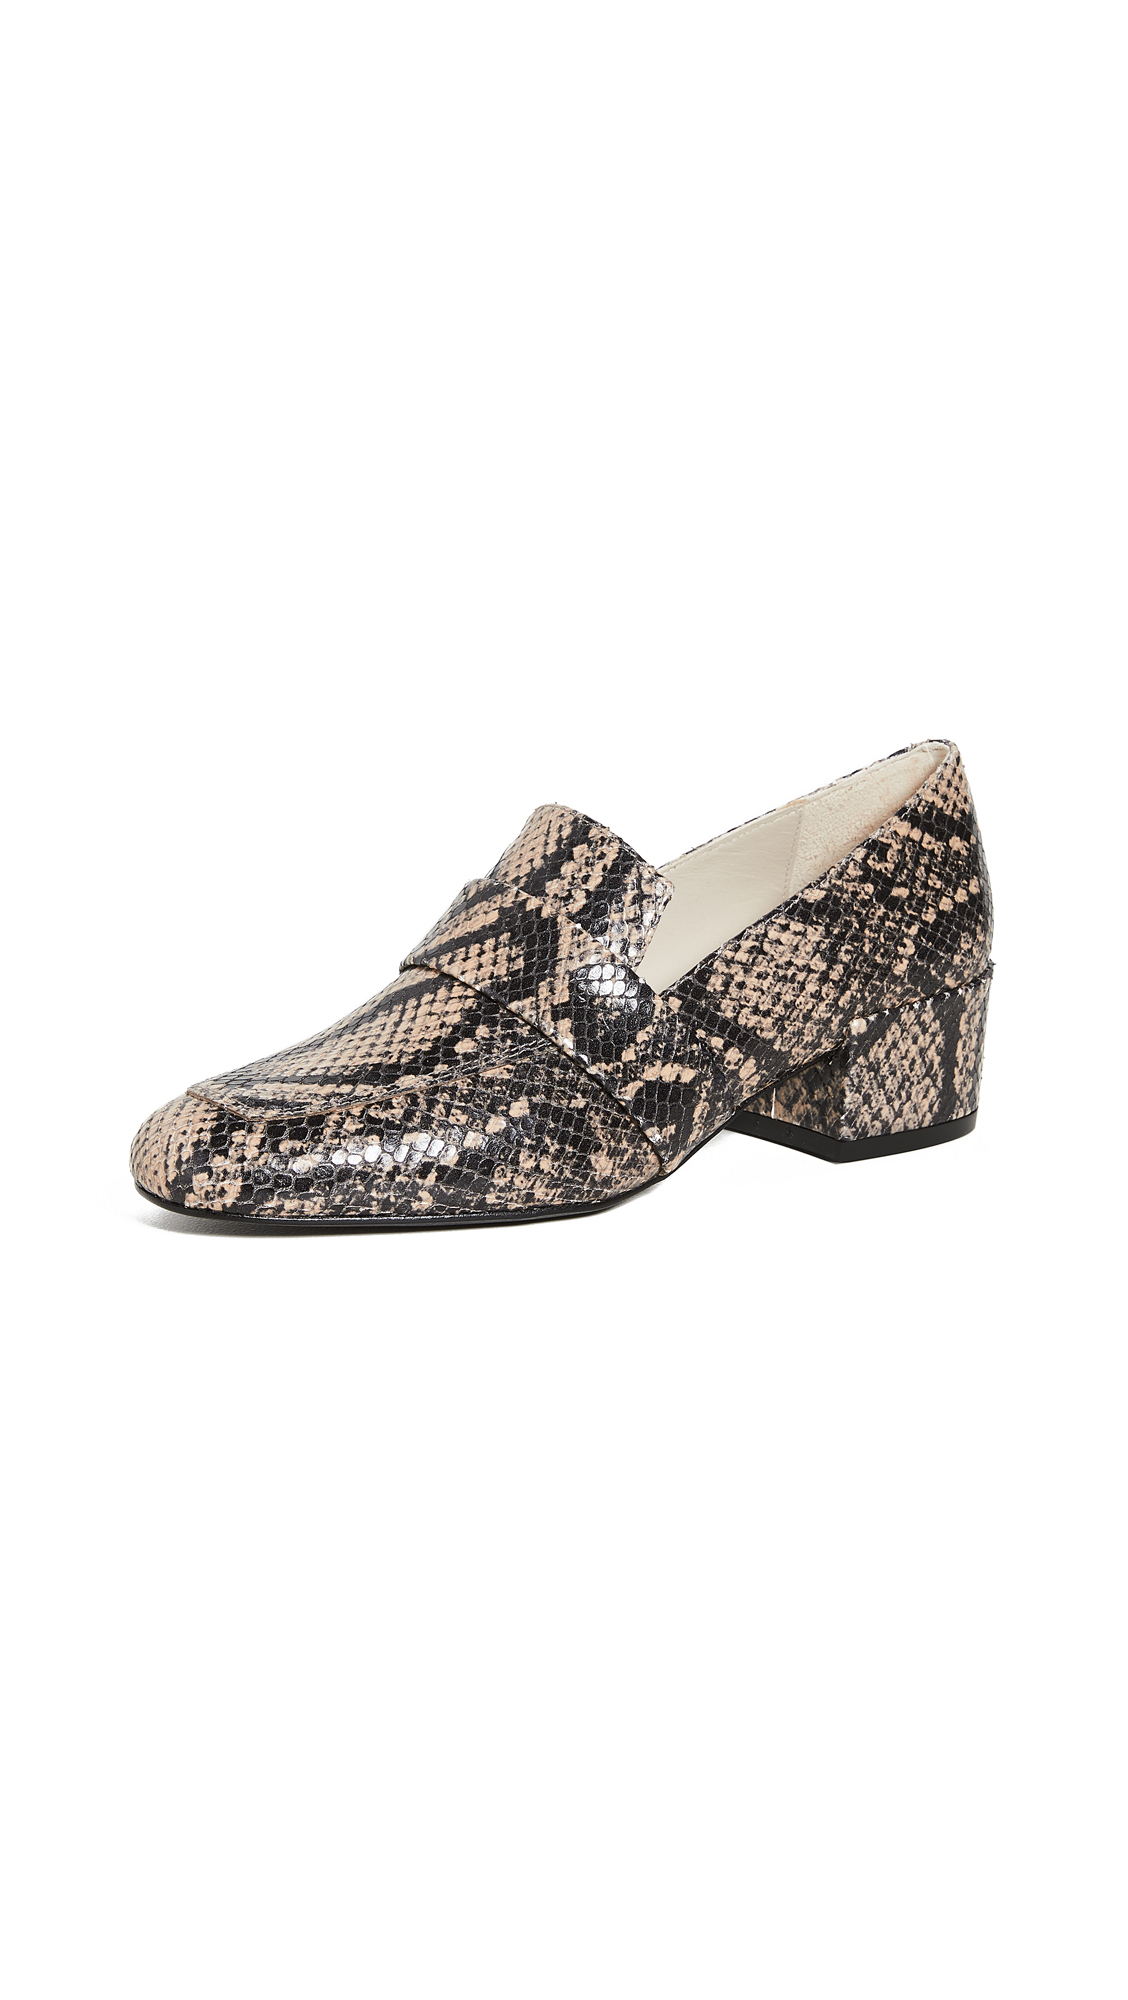 Freda Salvador Rock Heeled Loafers - 70% Off Sale